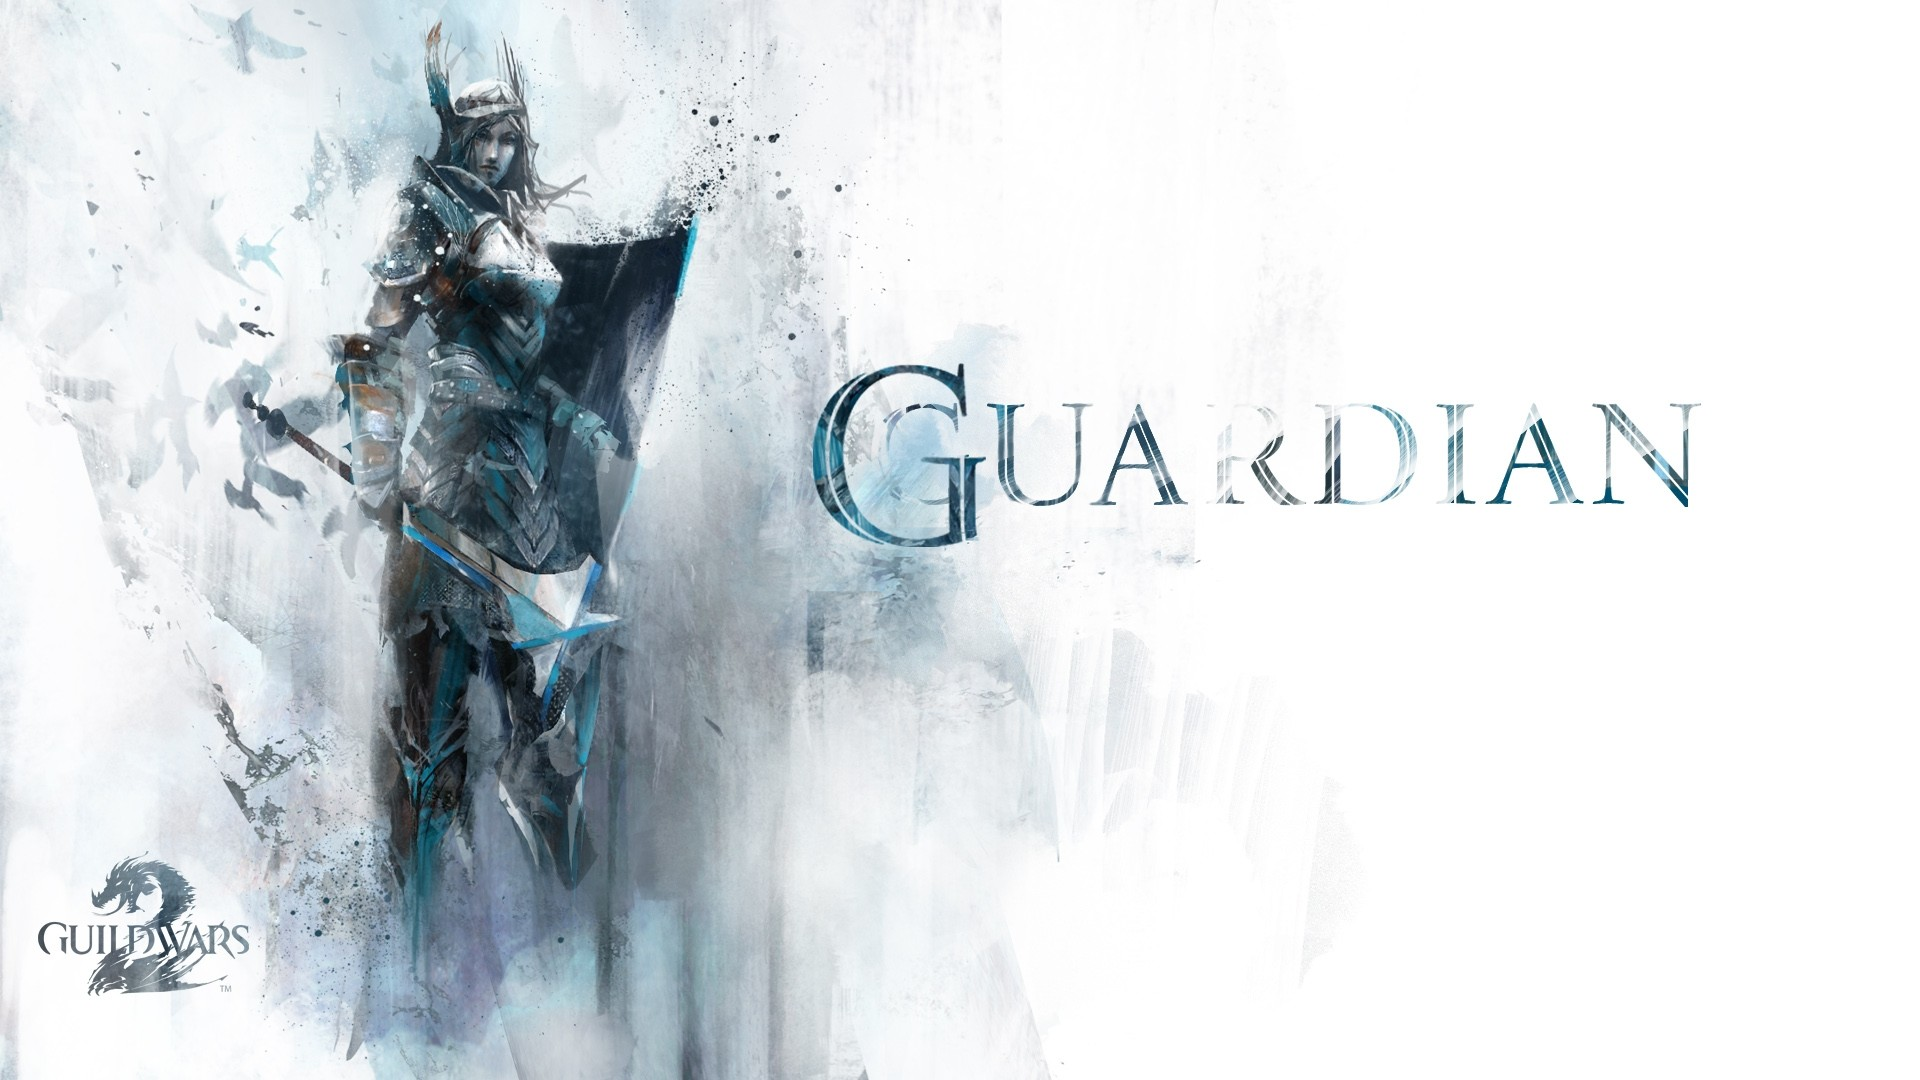 1920x1080 guild wars 2, guardian, shield